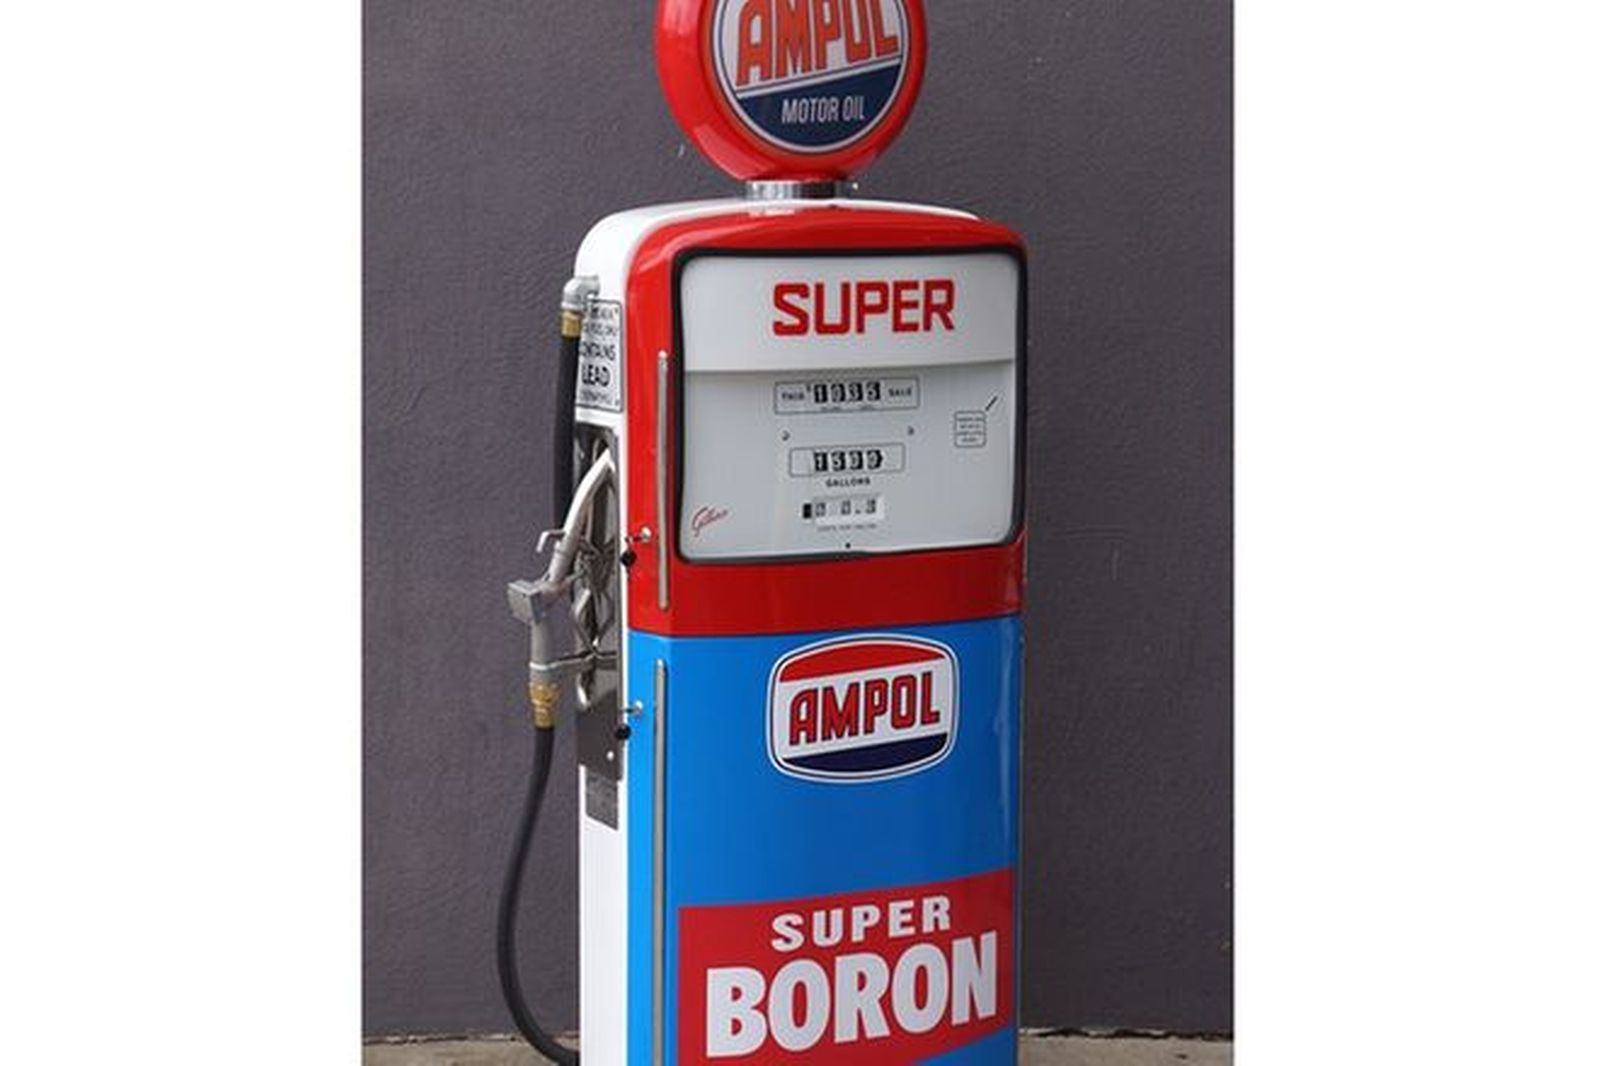 Petrol Pump Conversion - Gilbarco Sales Maker with TV & DVD. In Ampol Livery with Reproduction globe